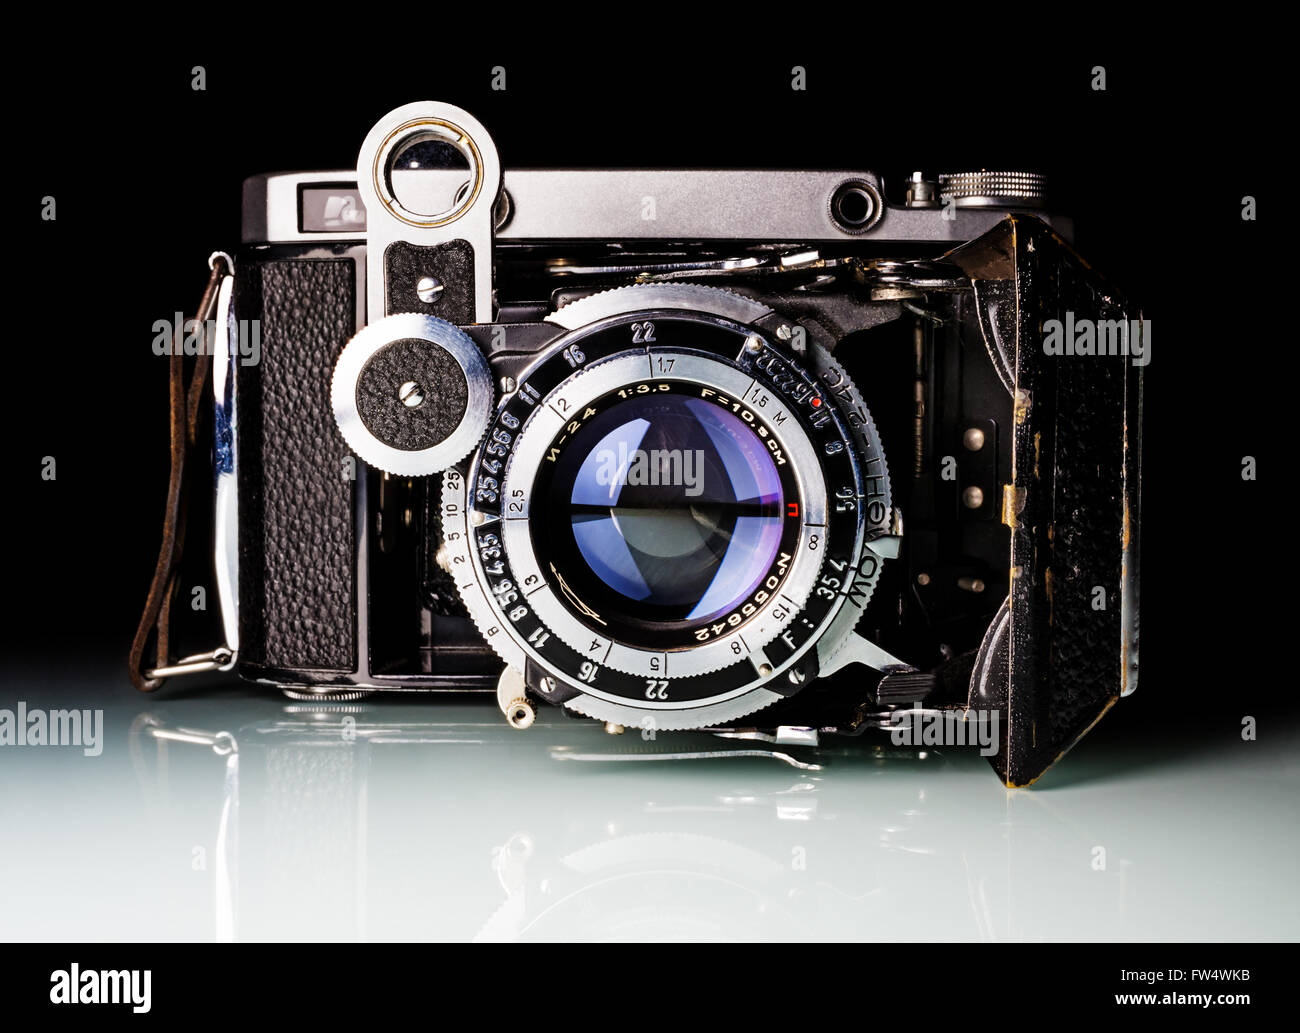 Moscow, Russia - February 02, 2016: The Moskva-5 (MOCKBA-5 in cyrillic) is a medium format rangefinder folding camera - Stock Image